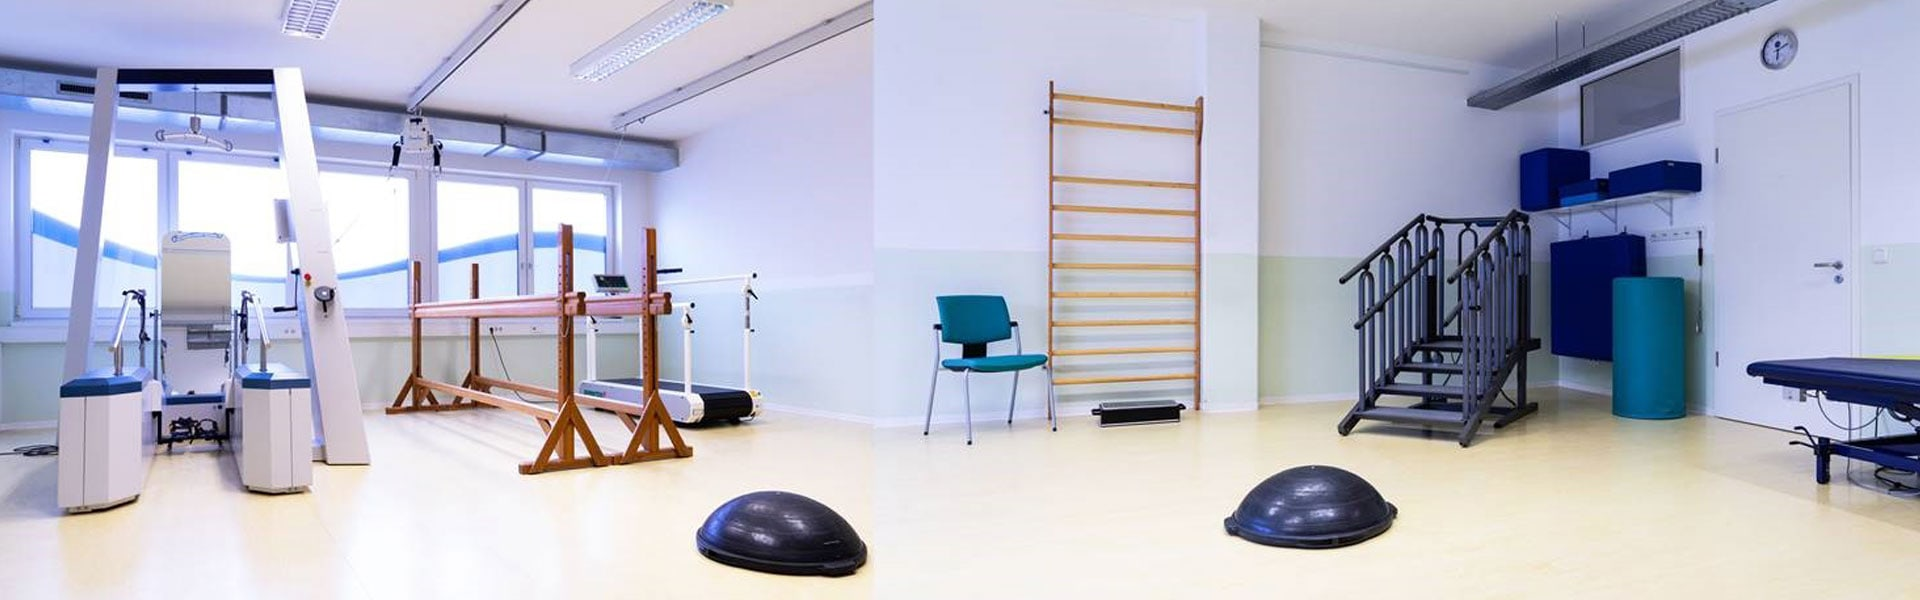 NEURON Therapiezentrum Egelsbach | Physiotherapie - Ergotherapie - Logopädie